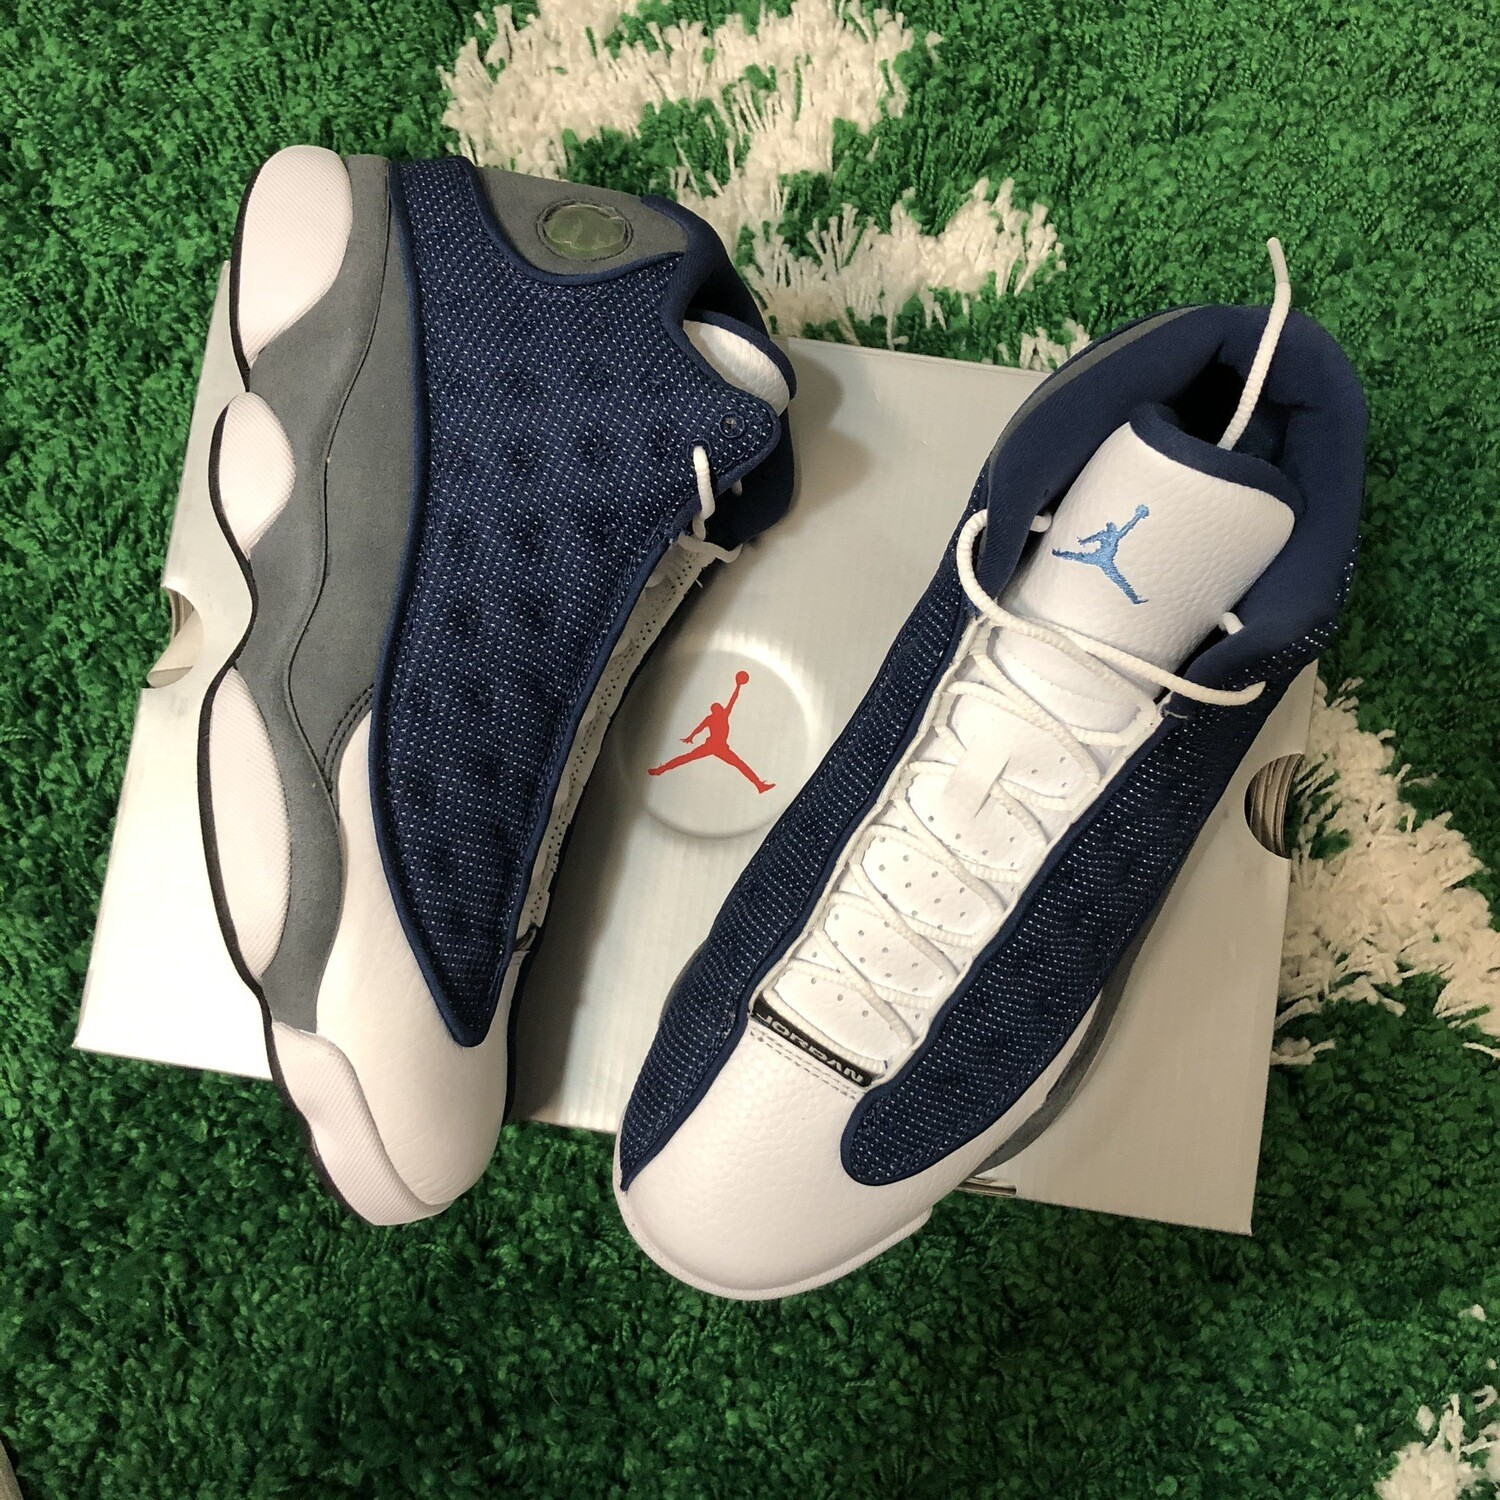 Air Jordan 13 Flint Size 10.5